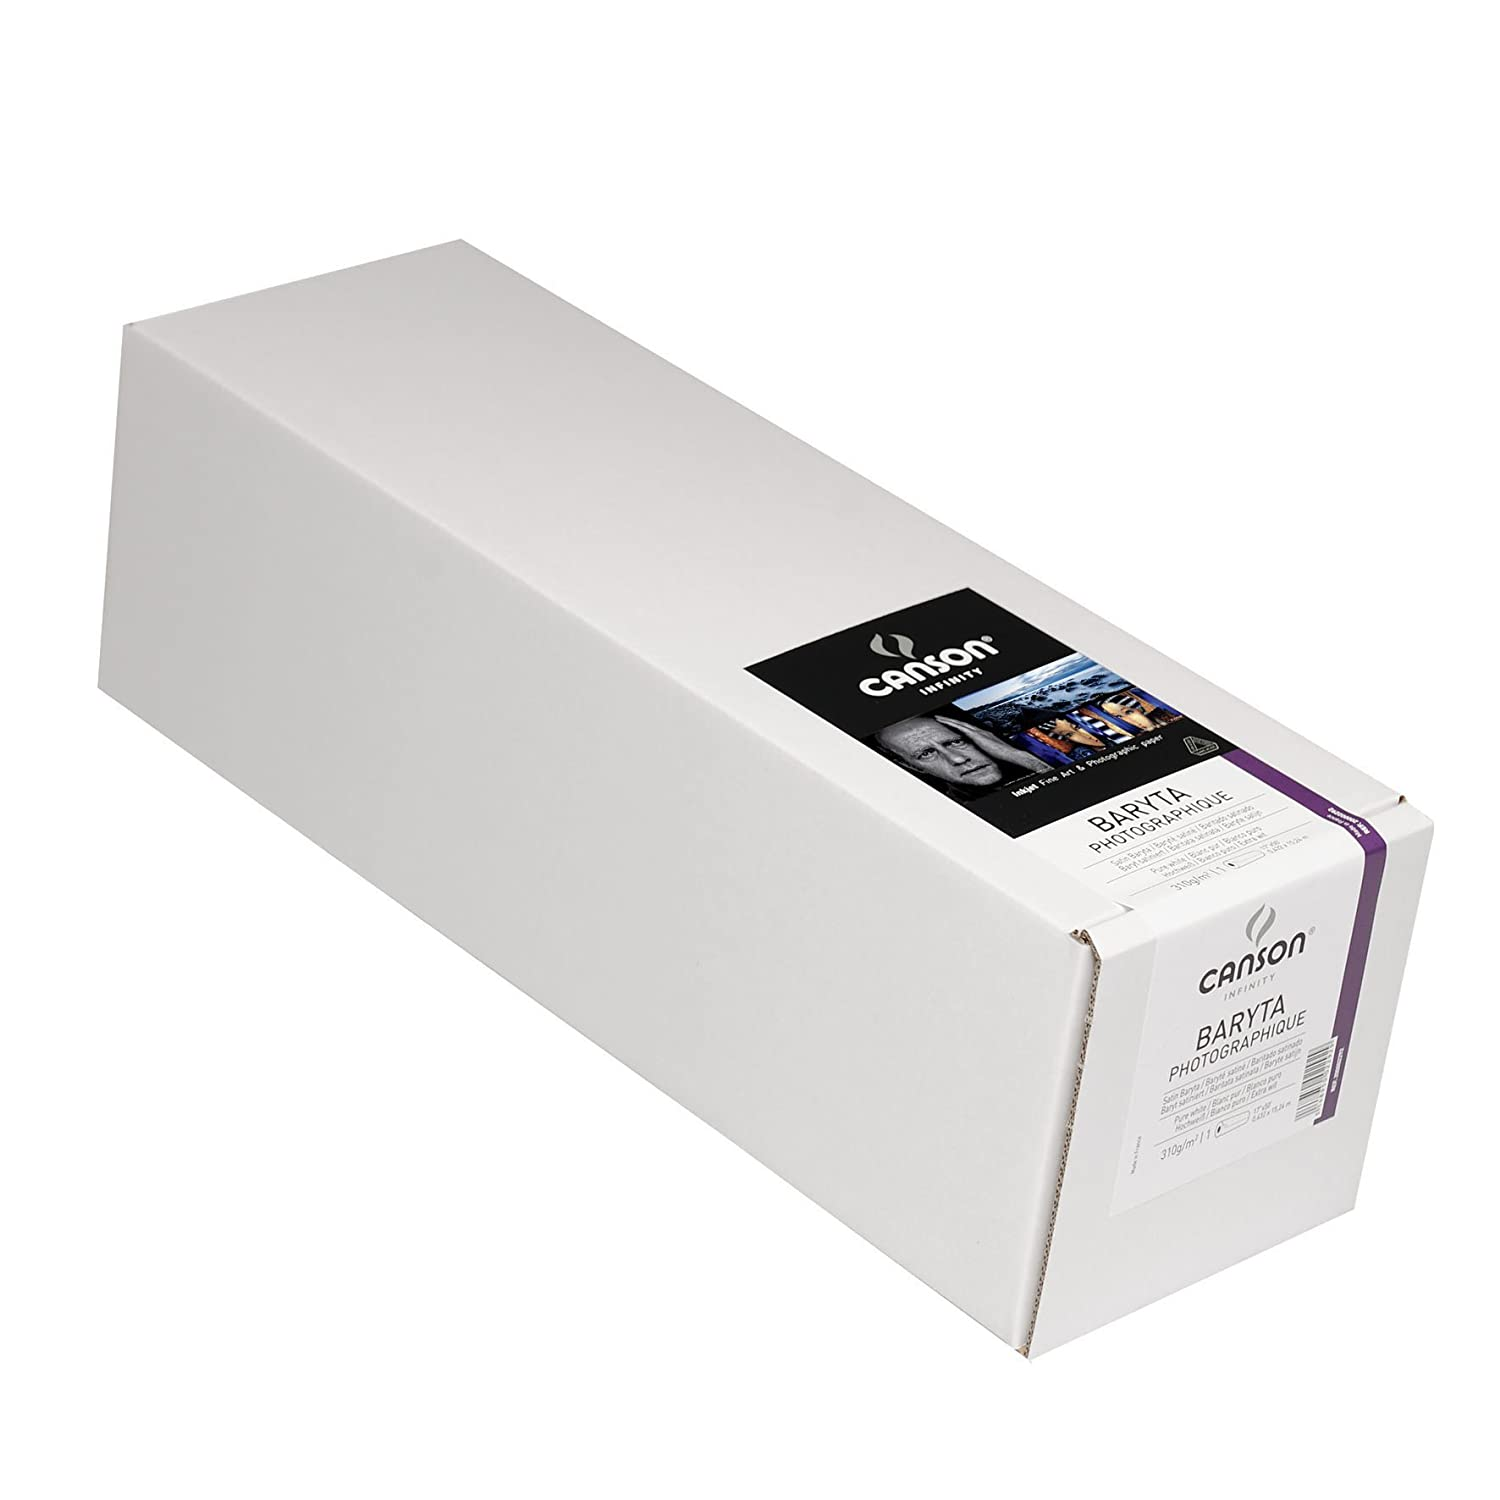 Canson Infinity Baryta Photographique Fine Art Paper, 8.5X11 8.5X11 Canson Inc. 200002271